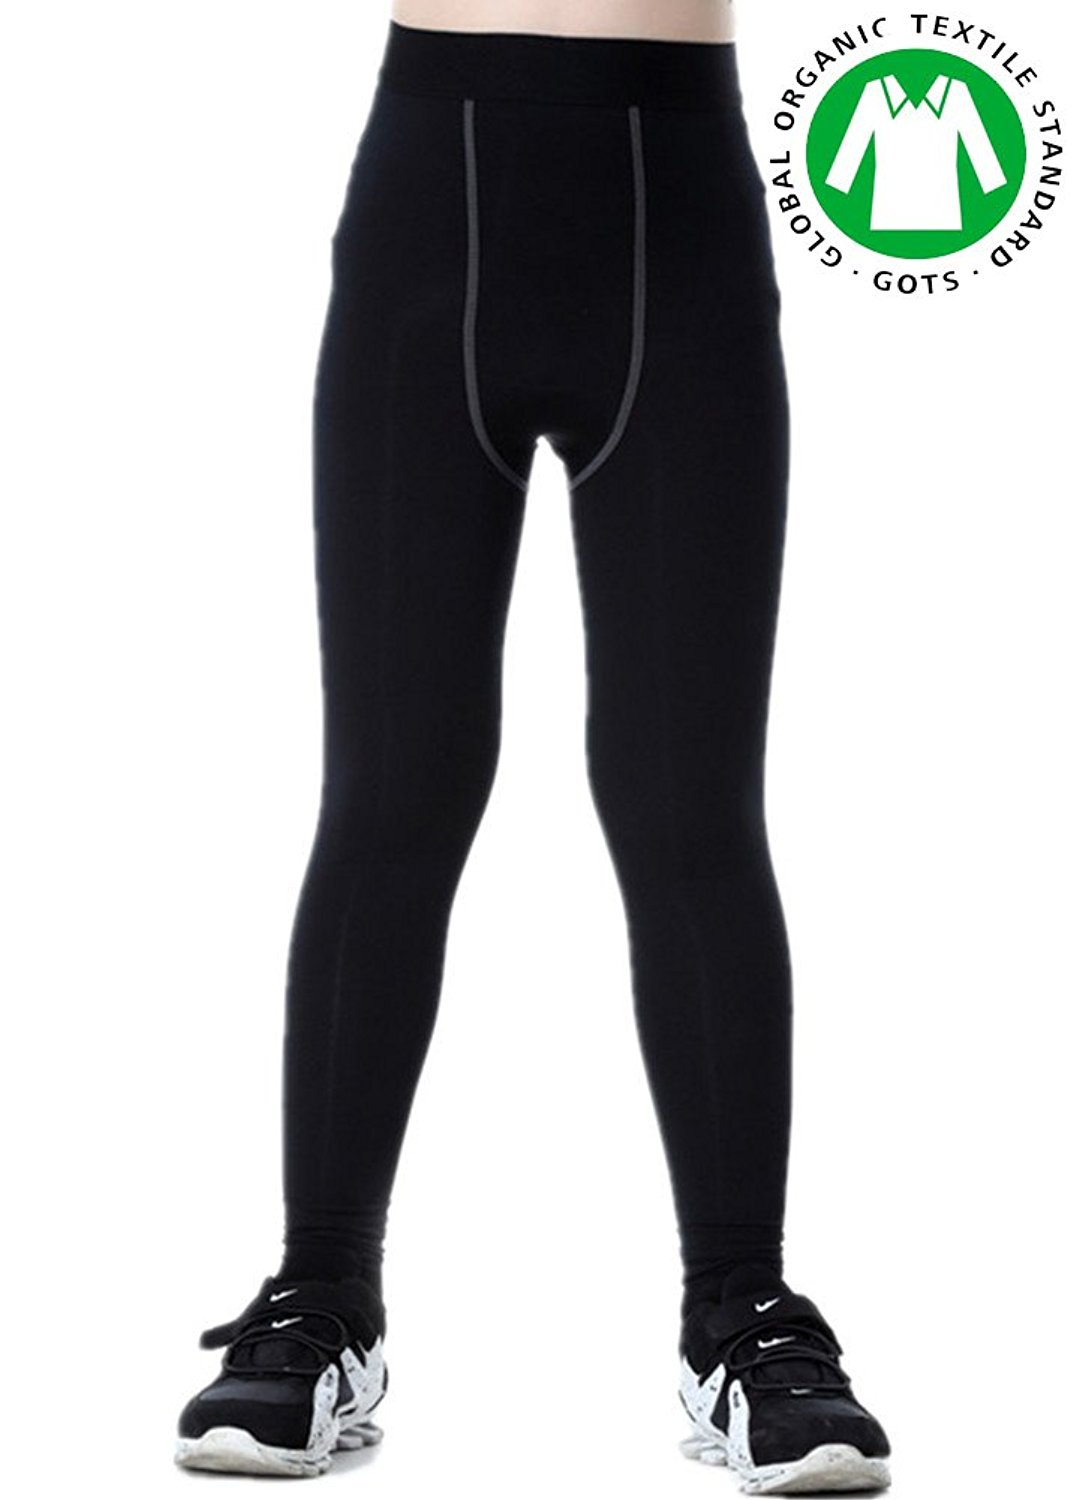 9a83347987 Get Quotations · Boys Compression Pants Base Layers Soccer Hockey Tights  Athletic Leggings Thermal for Kids